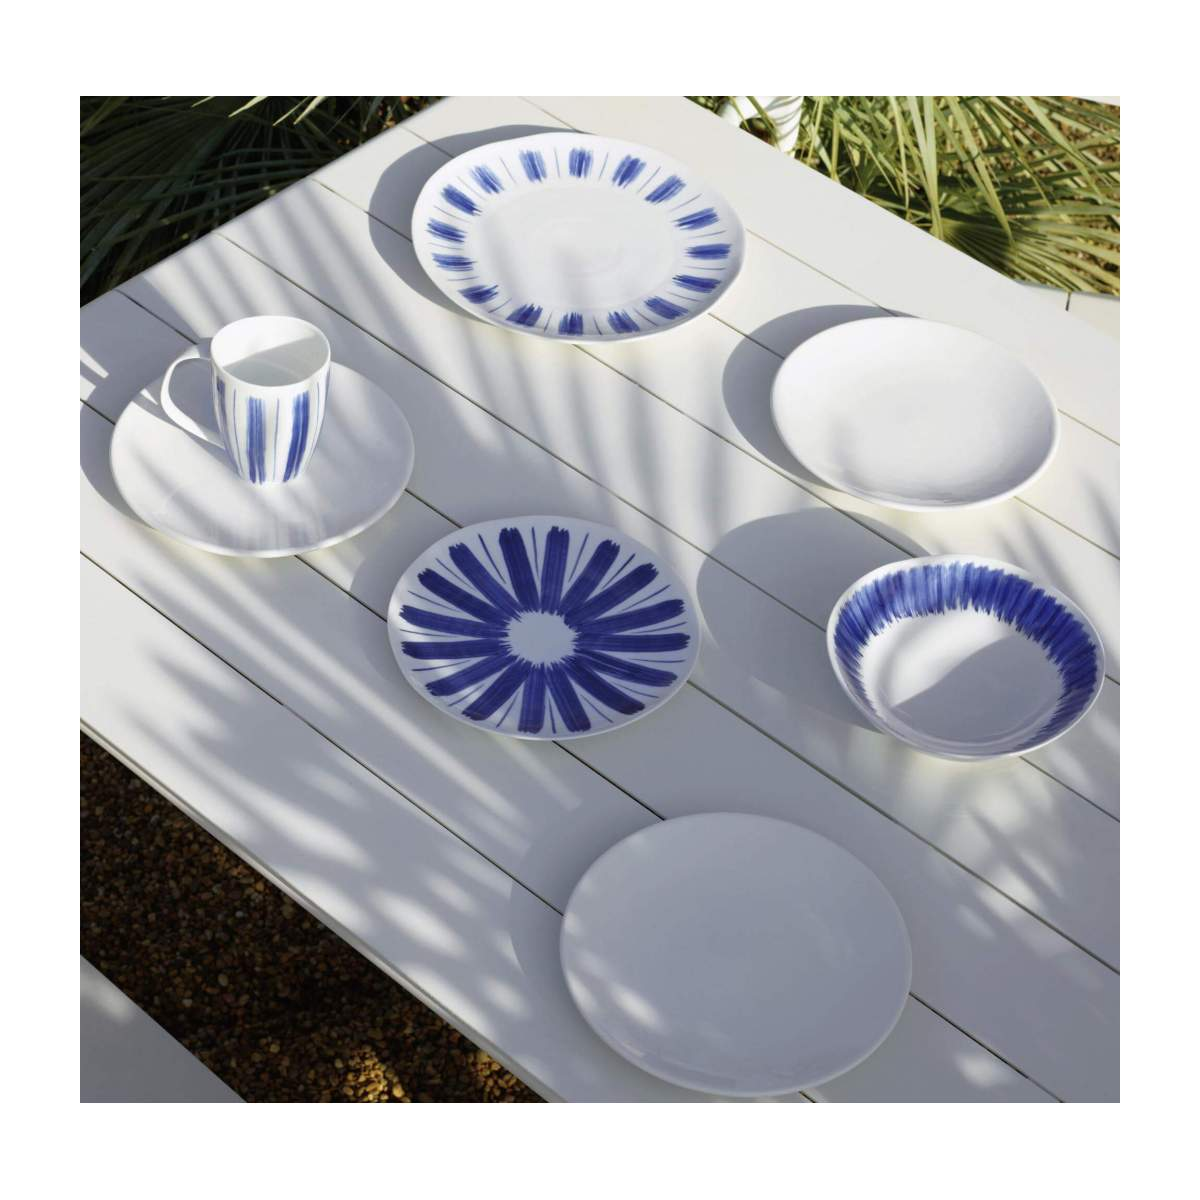 Dessert plate made of porcelain, white and blue n°7